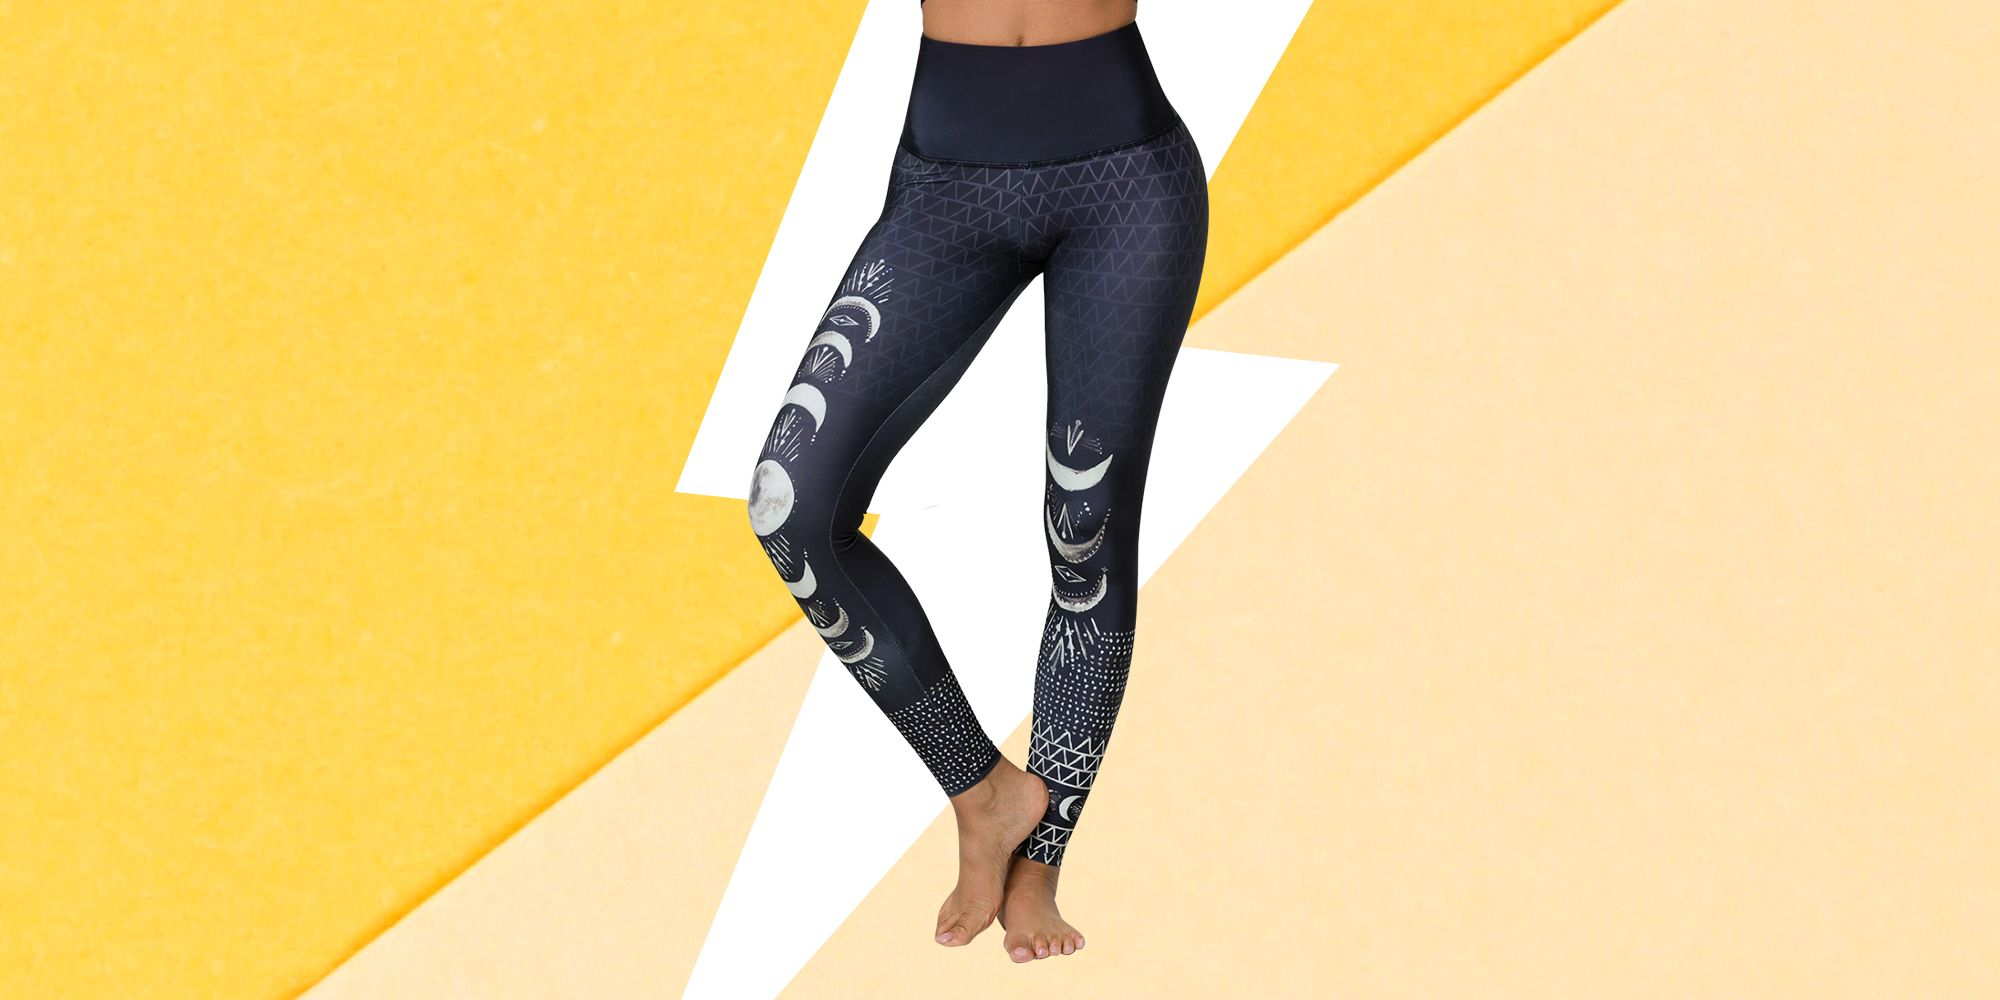 Women/'s Solid Black Leggings Yoga Pants One Size